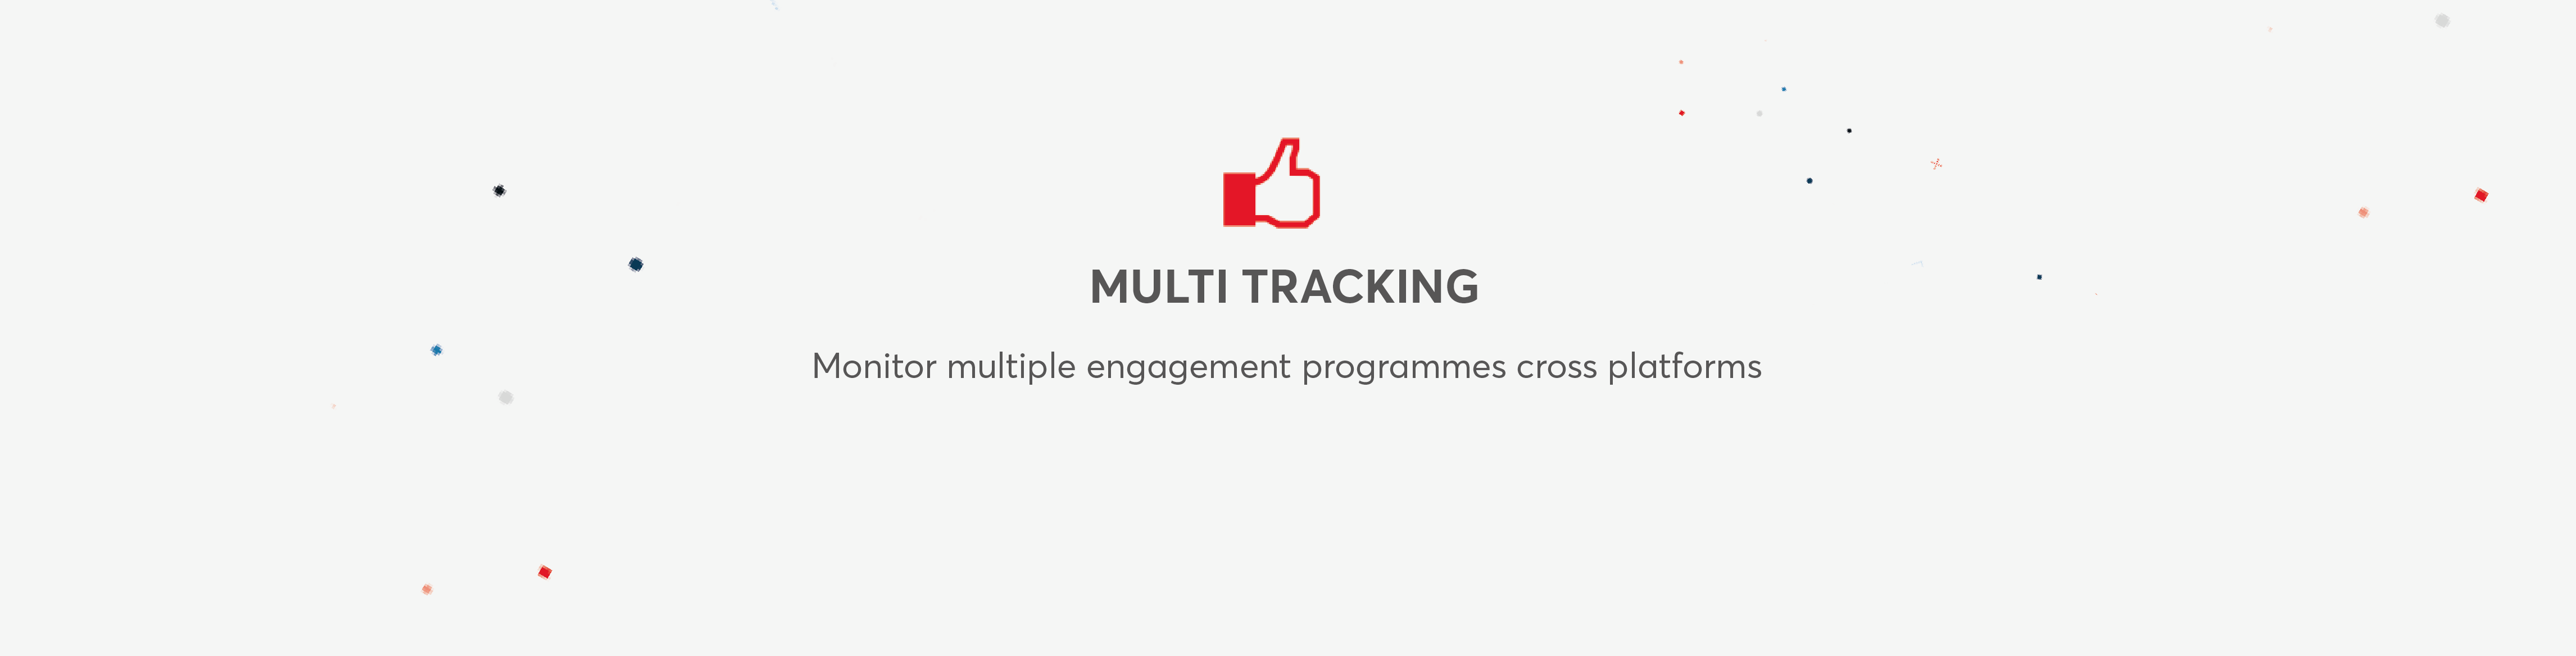 MULTI-TRACKING.png